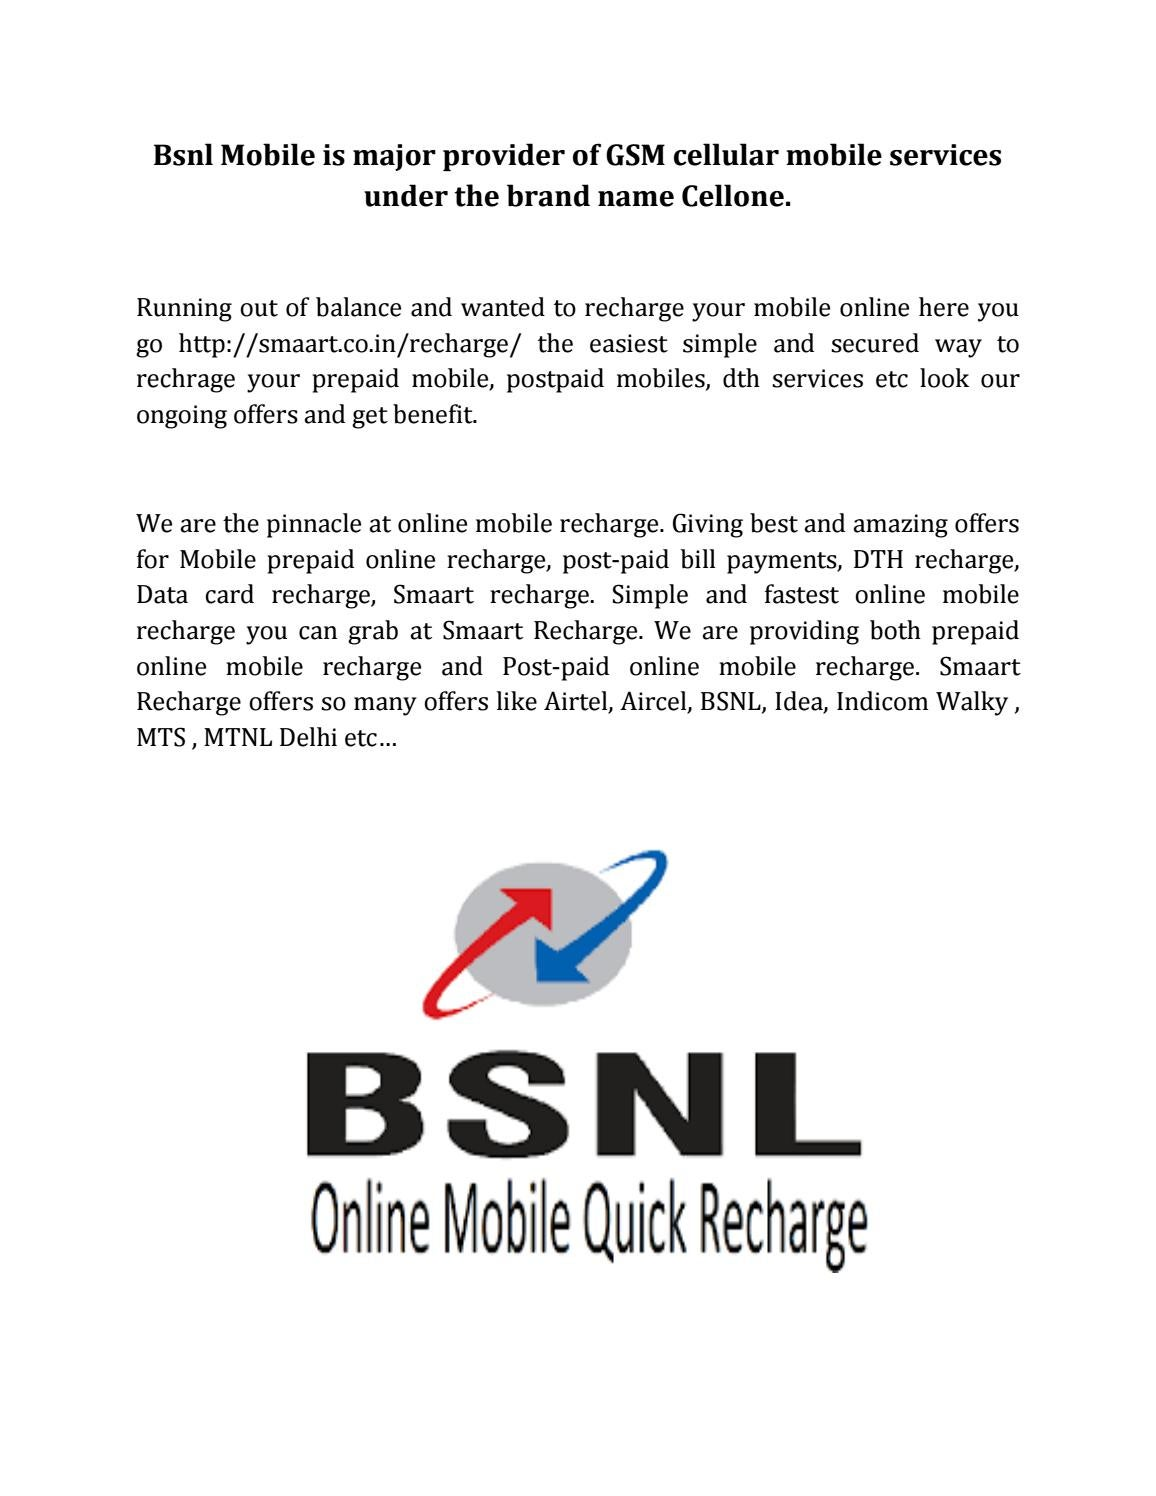 Bsnl Mobile is major provider of GSM cellular mobile